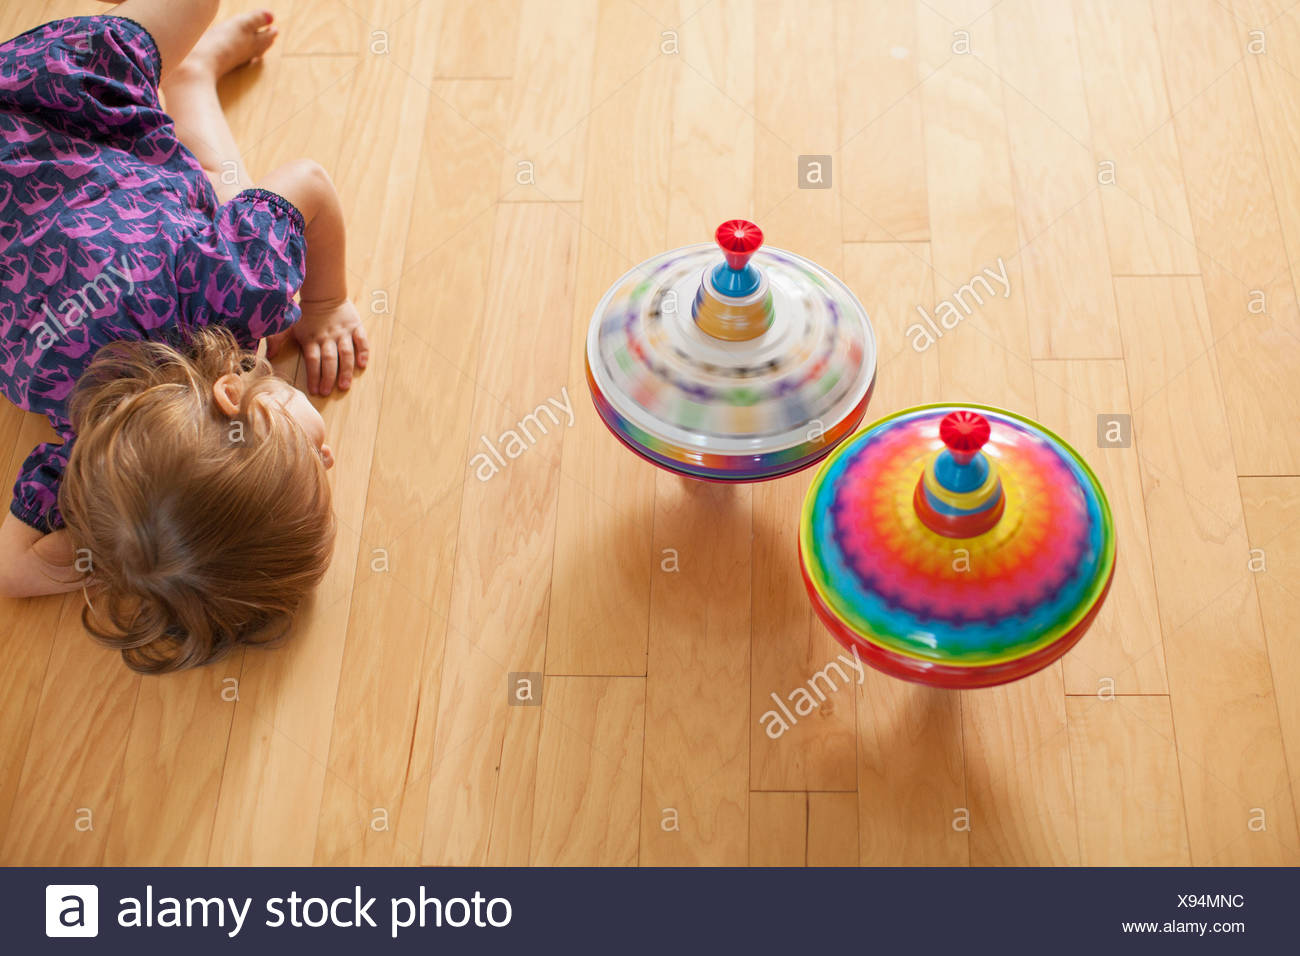 Girl playing with spinning tops Stock Photo: 281001880 - Alamy